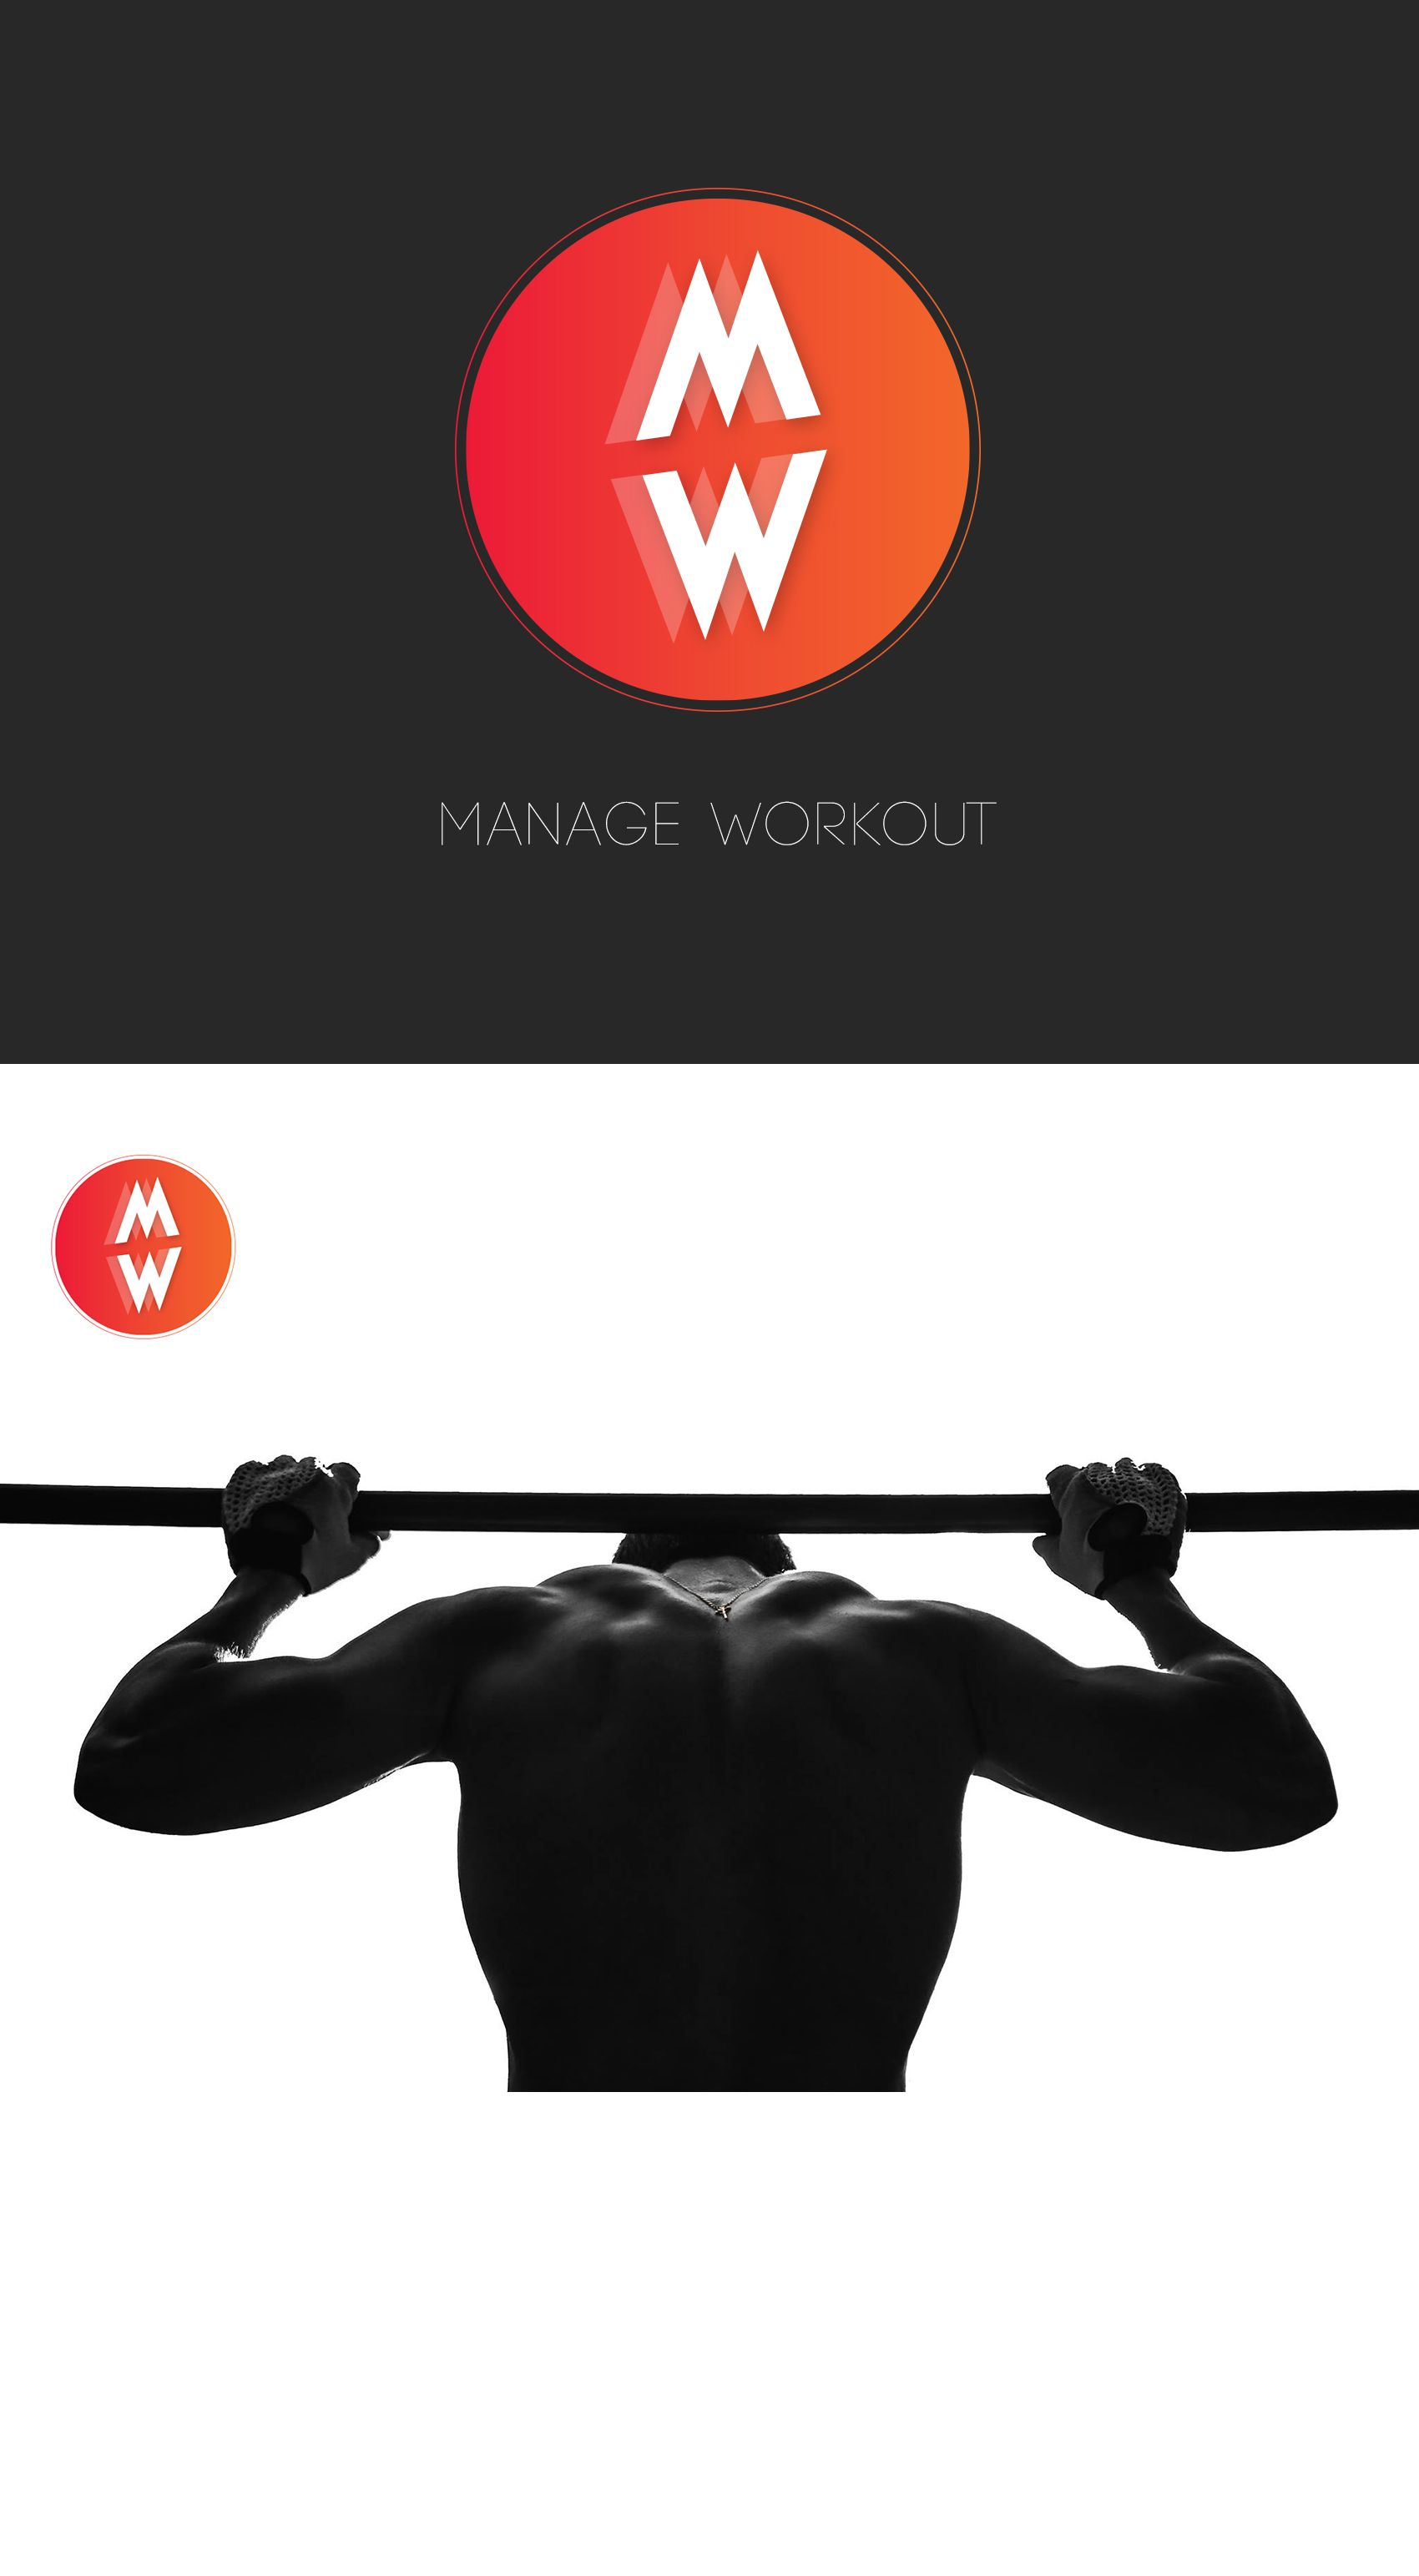 #Logos #logo #logotype #design #lettering #calligraphy #minimal #app #workout #work #train #muscule #fit #fitness